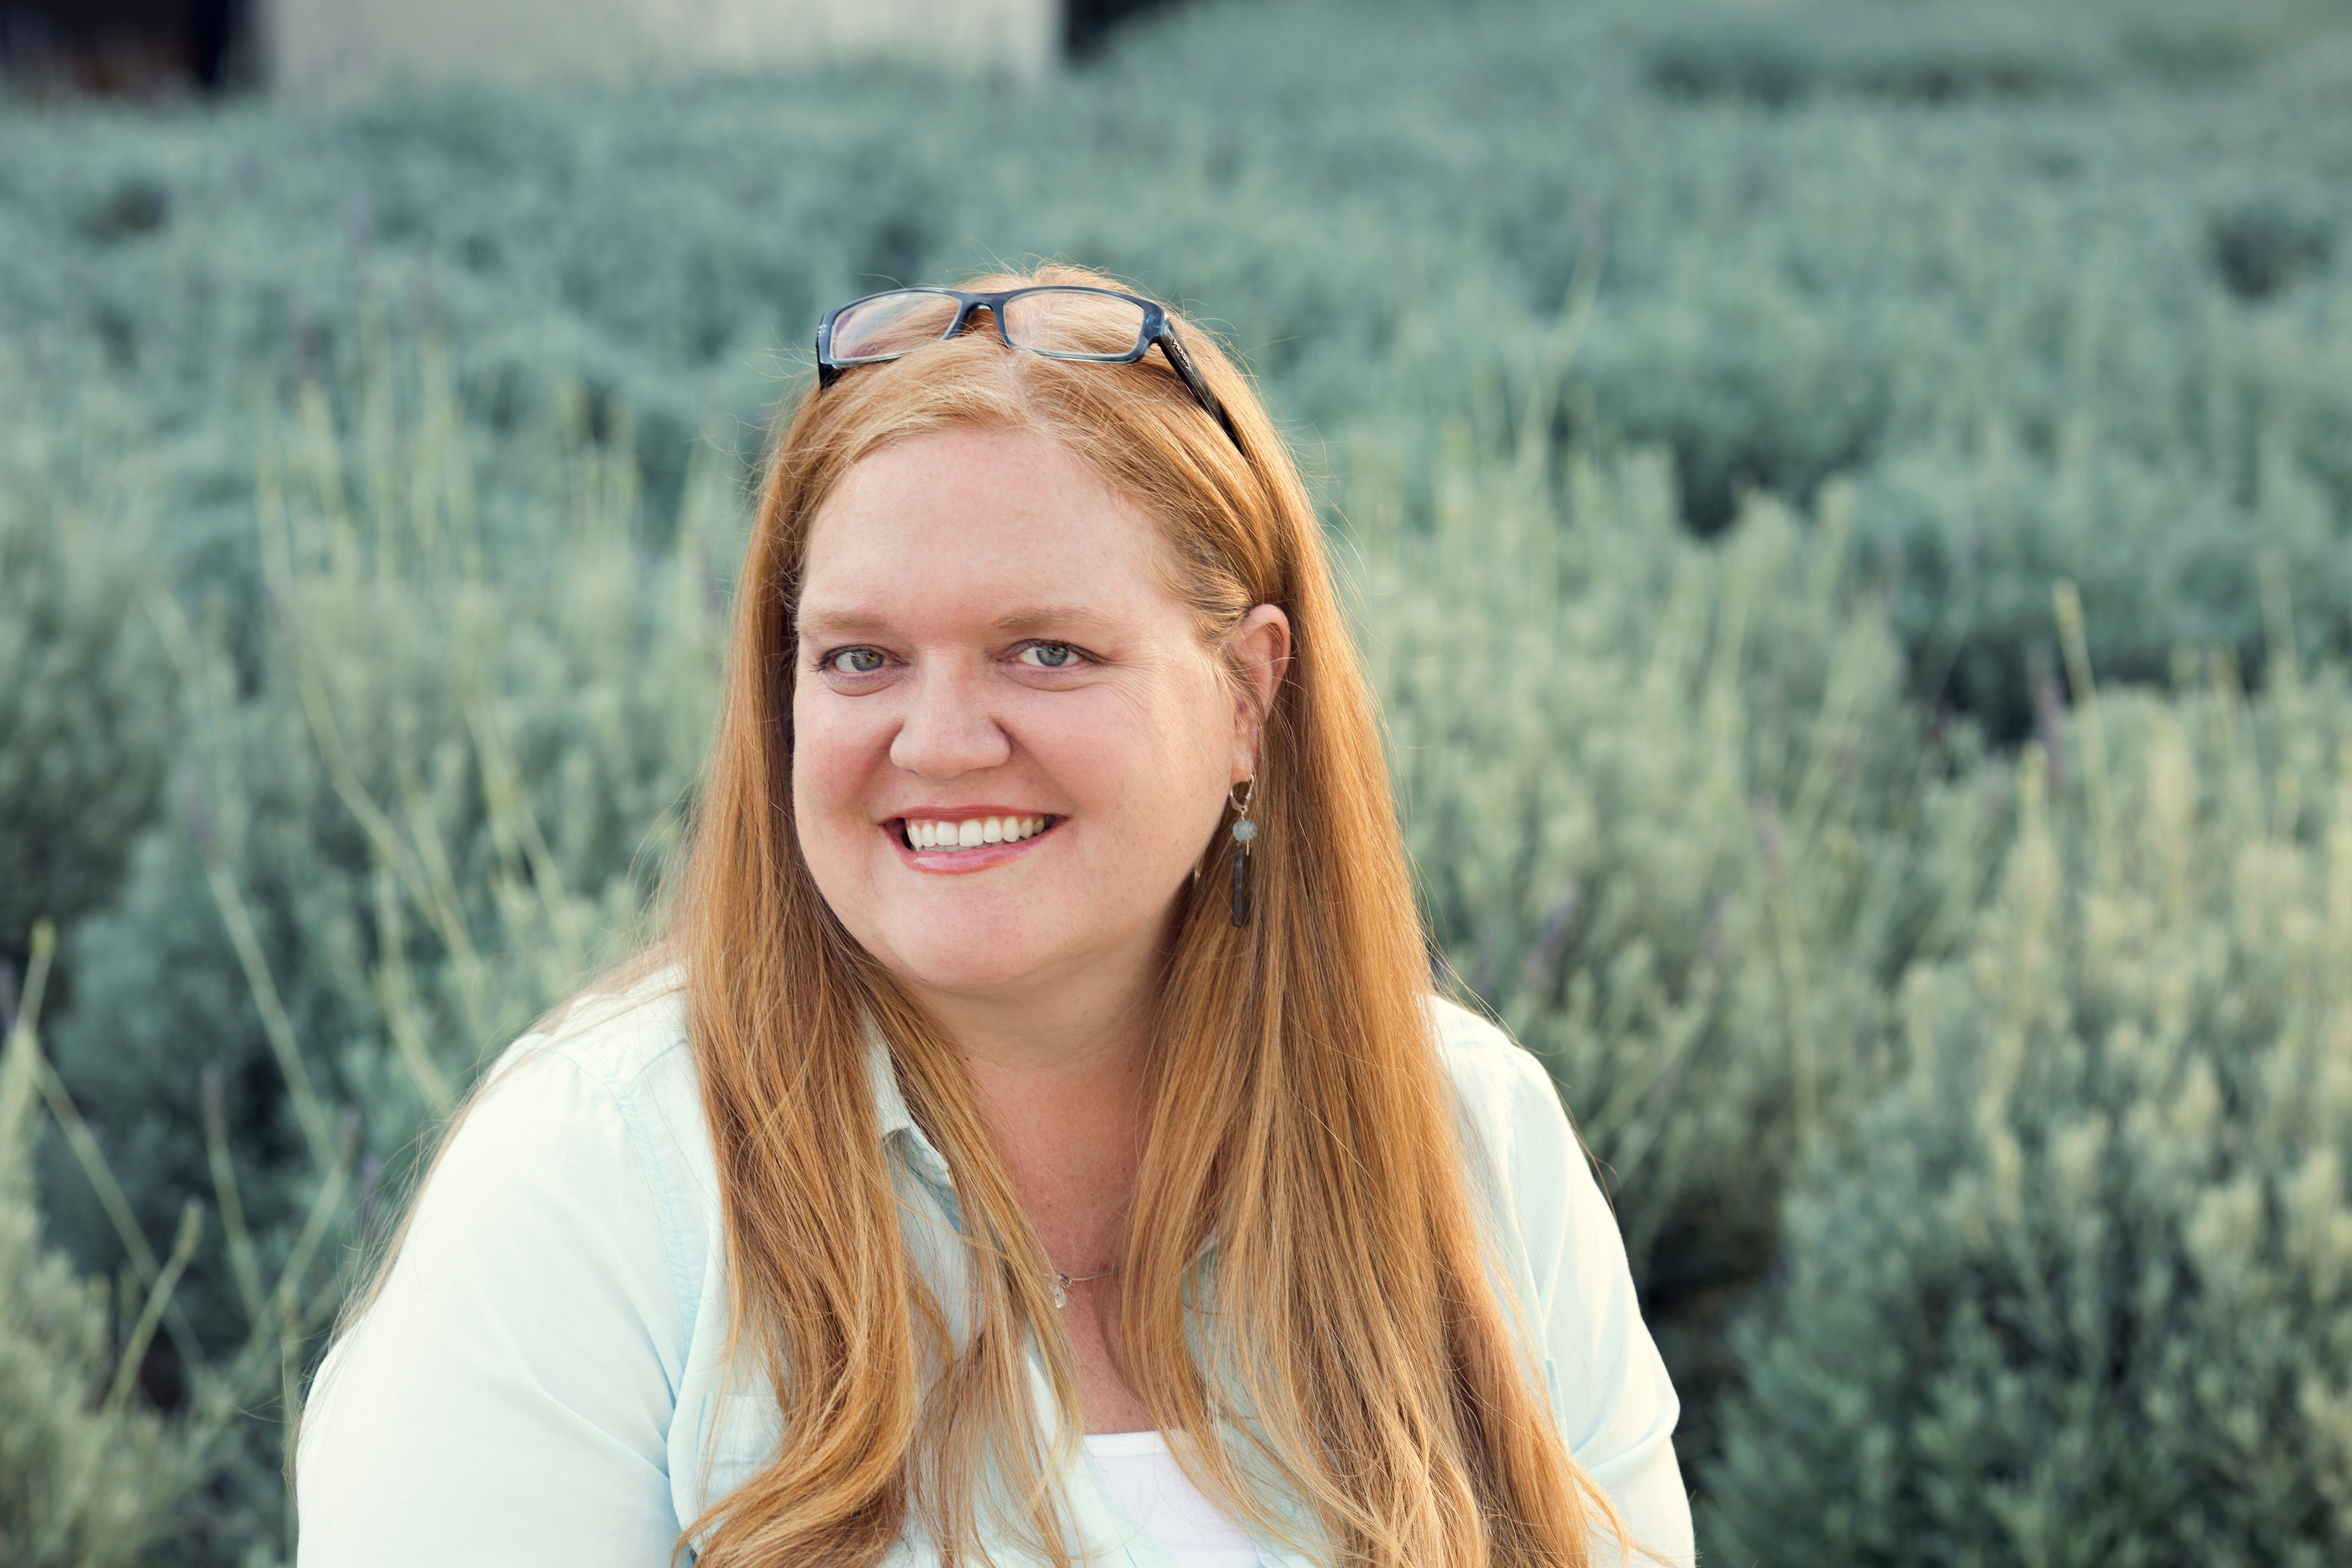 Obama White House UX Director to Keynote DC Event